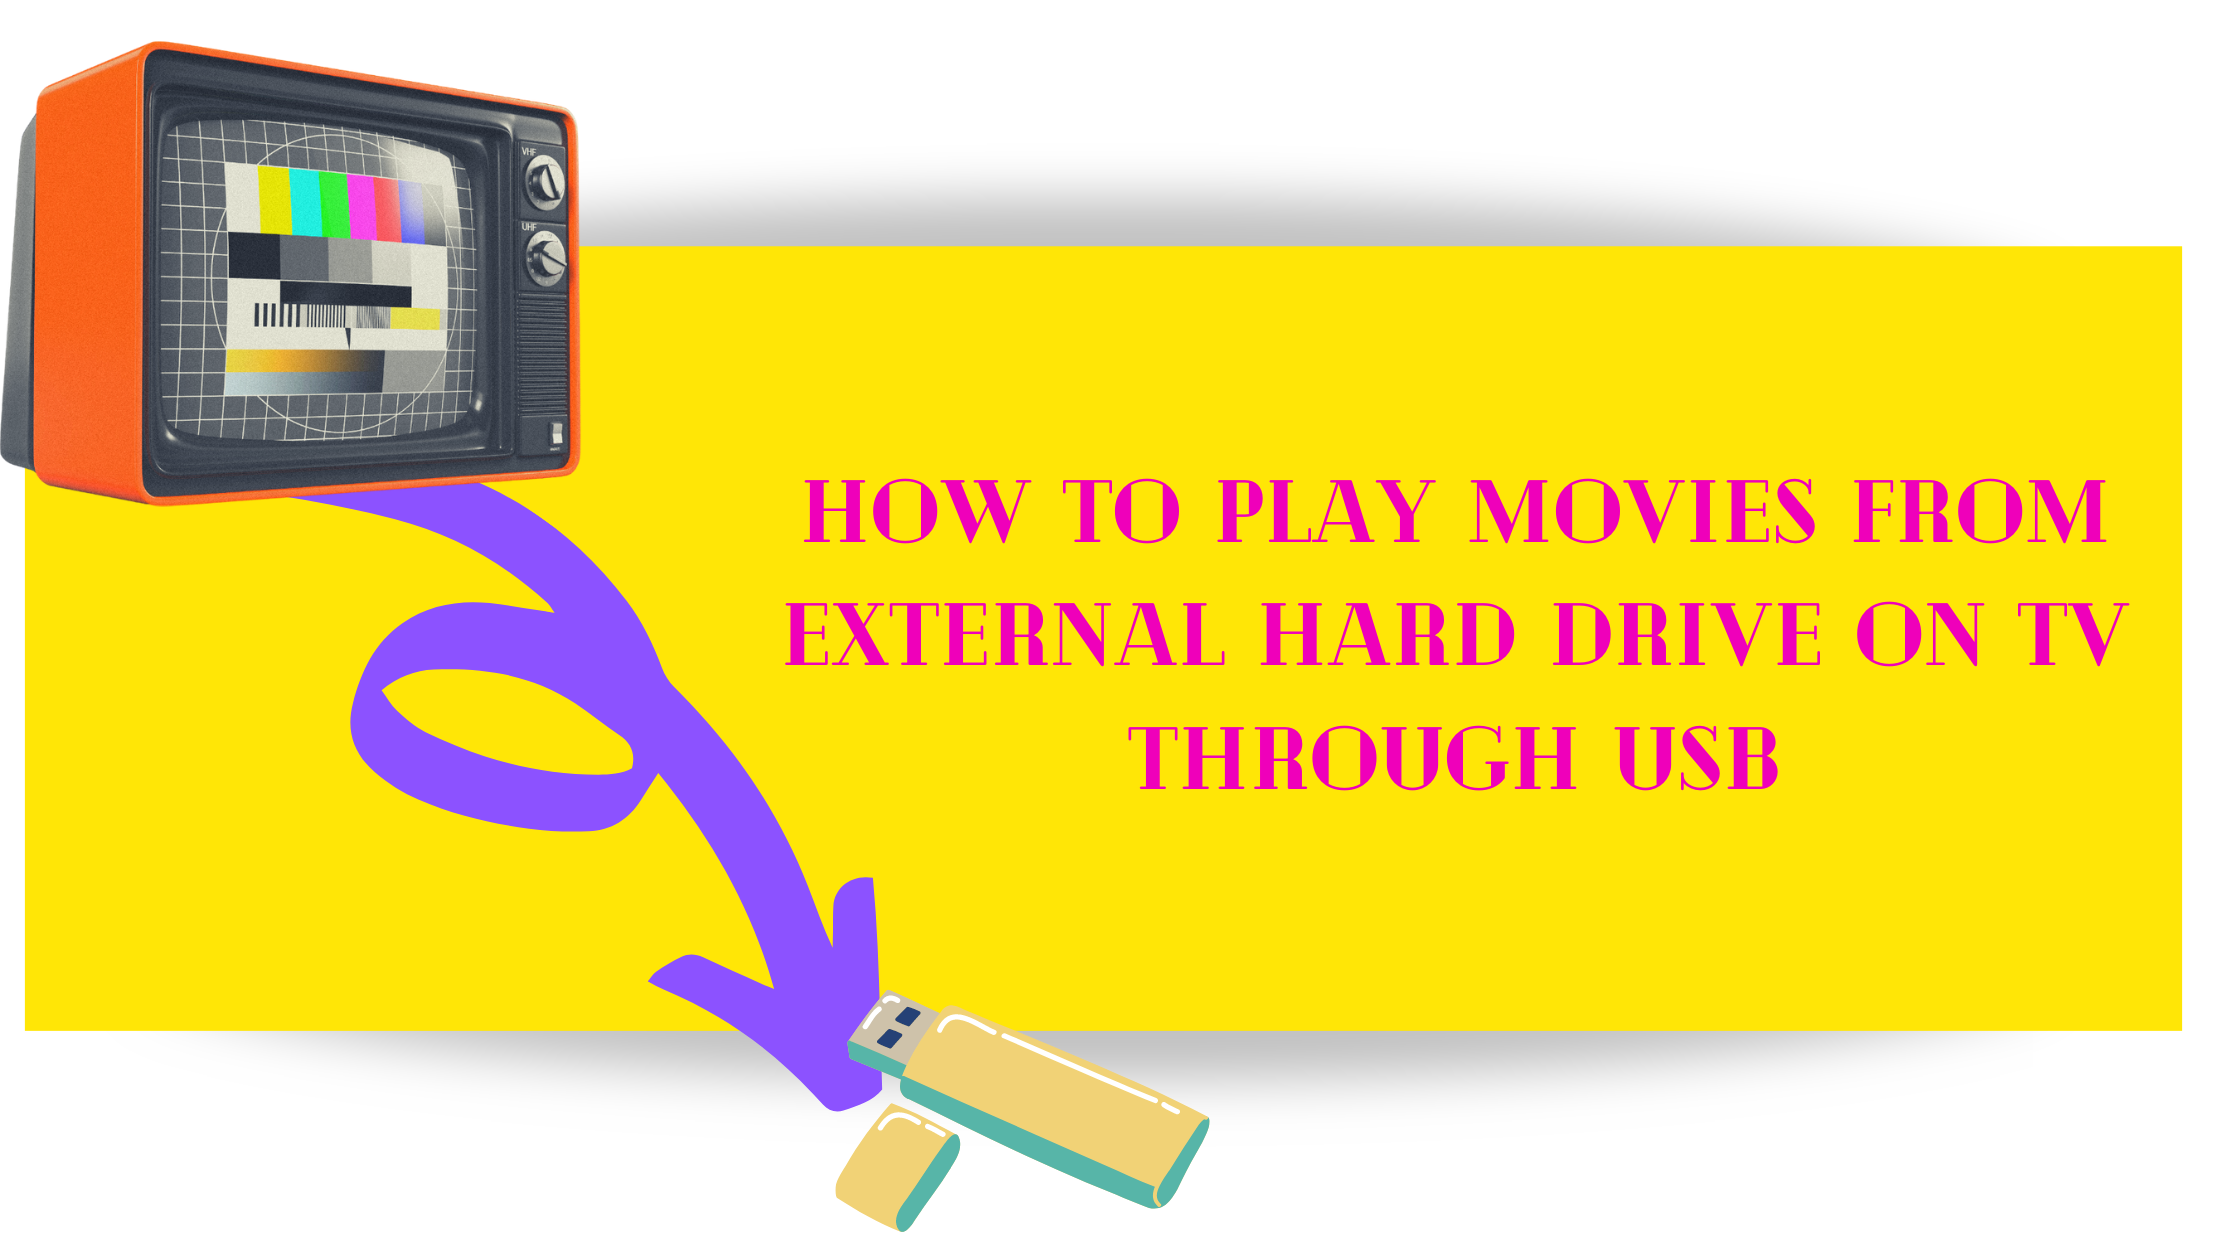 How to Play Movies from External Hard Drive on TV through USB